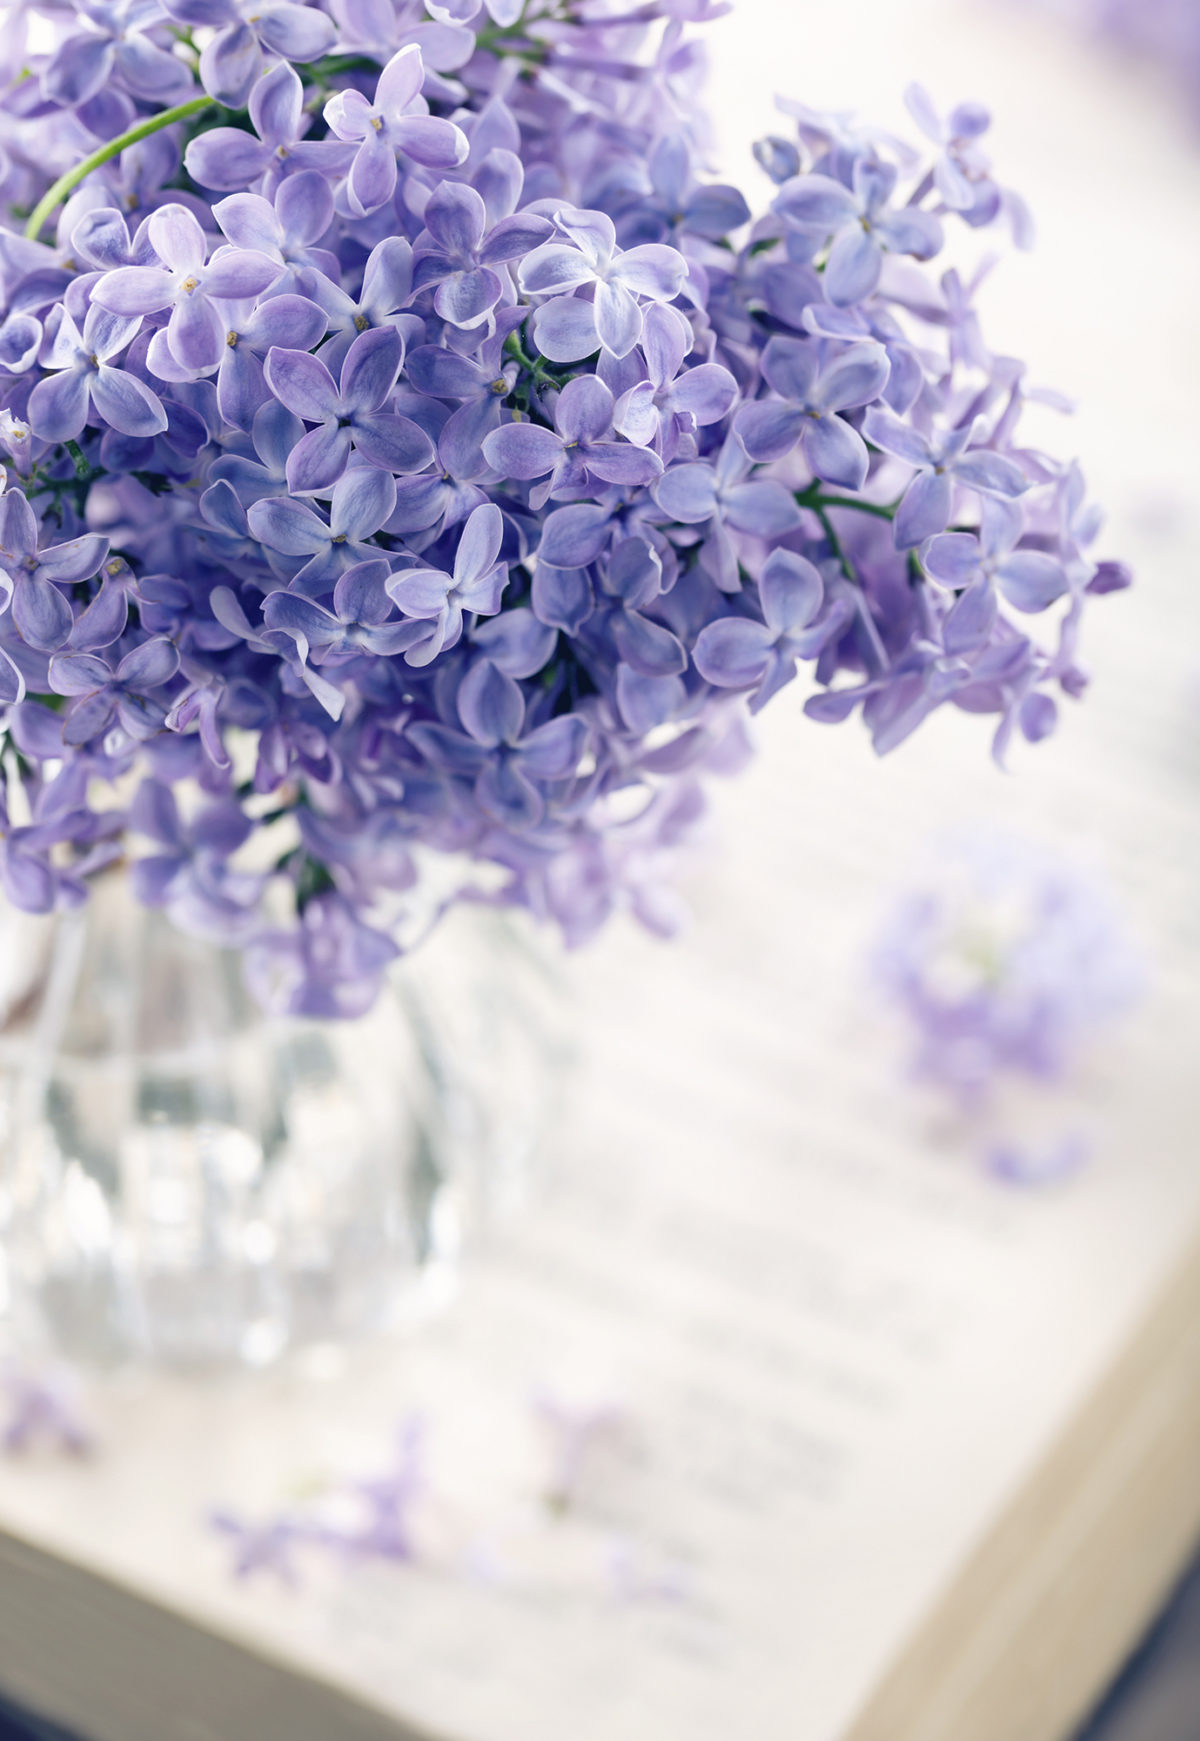 Lilac flowers in a vase on top of a desk